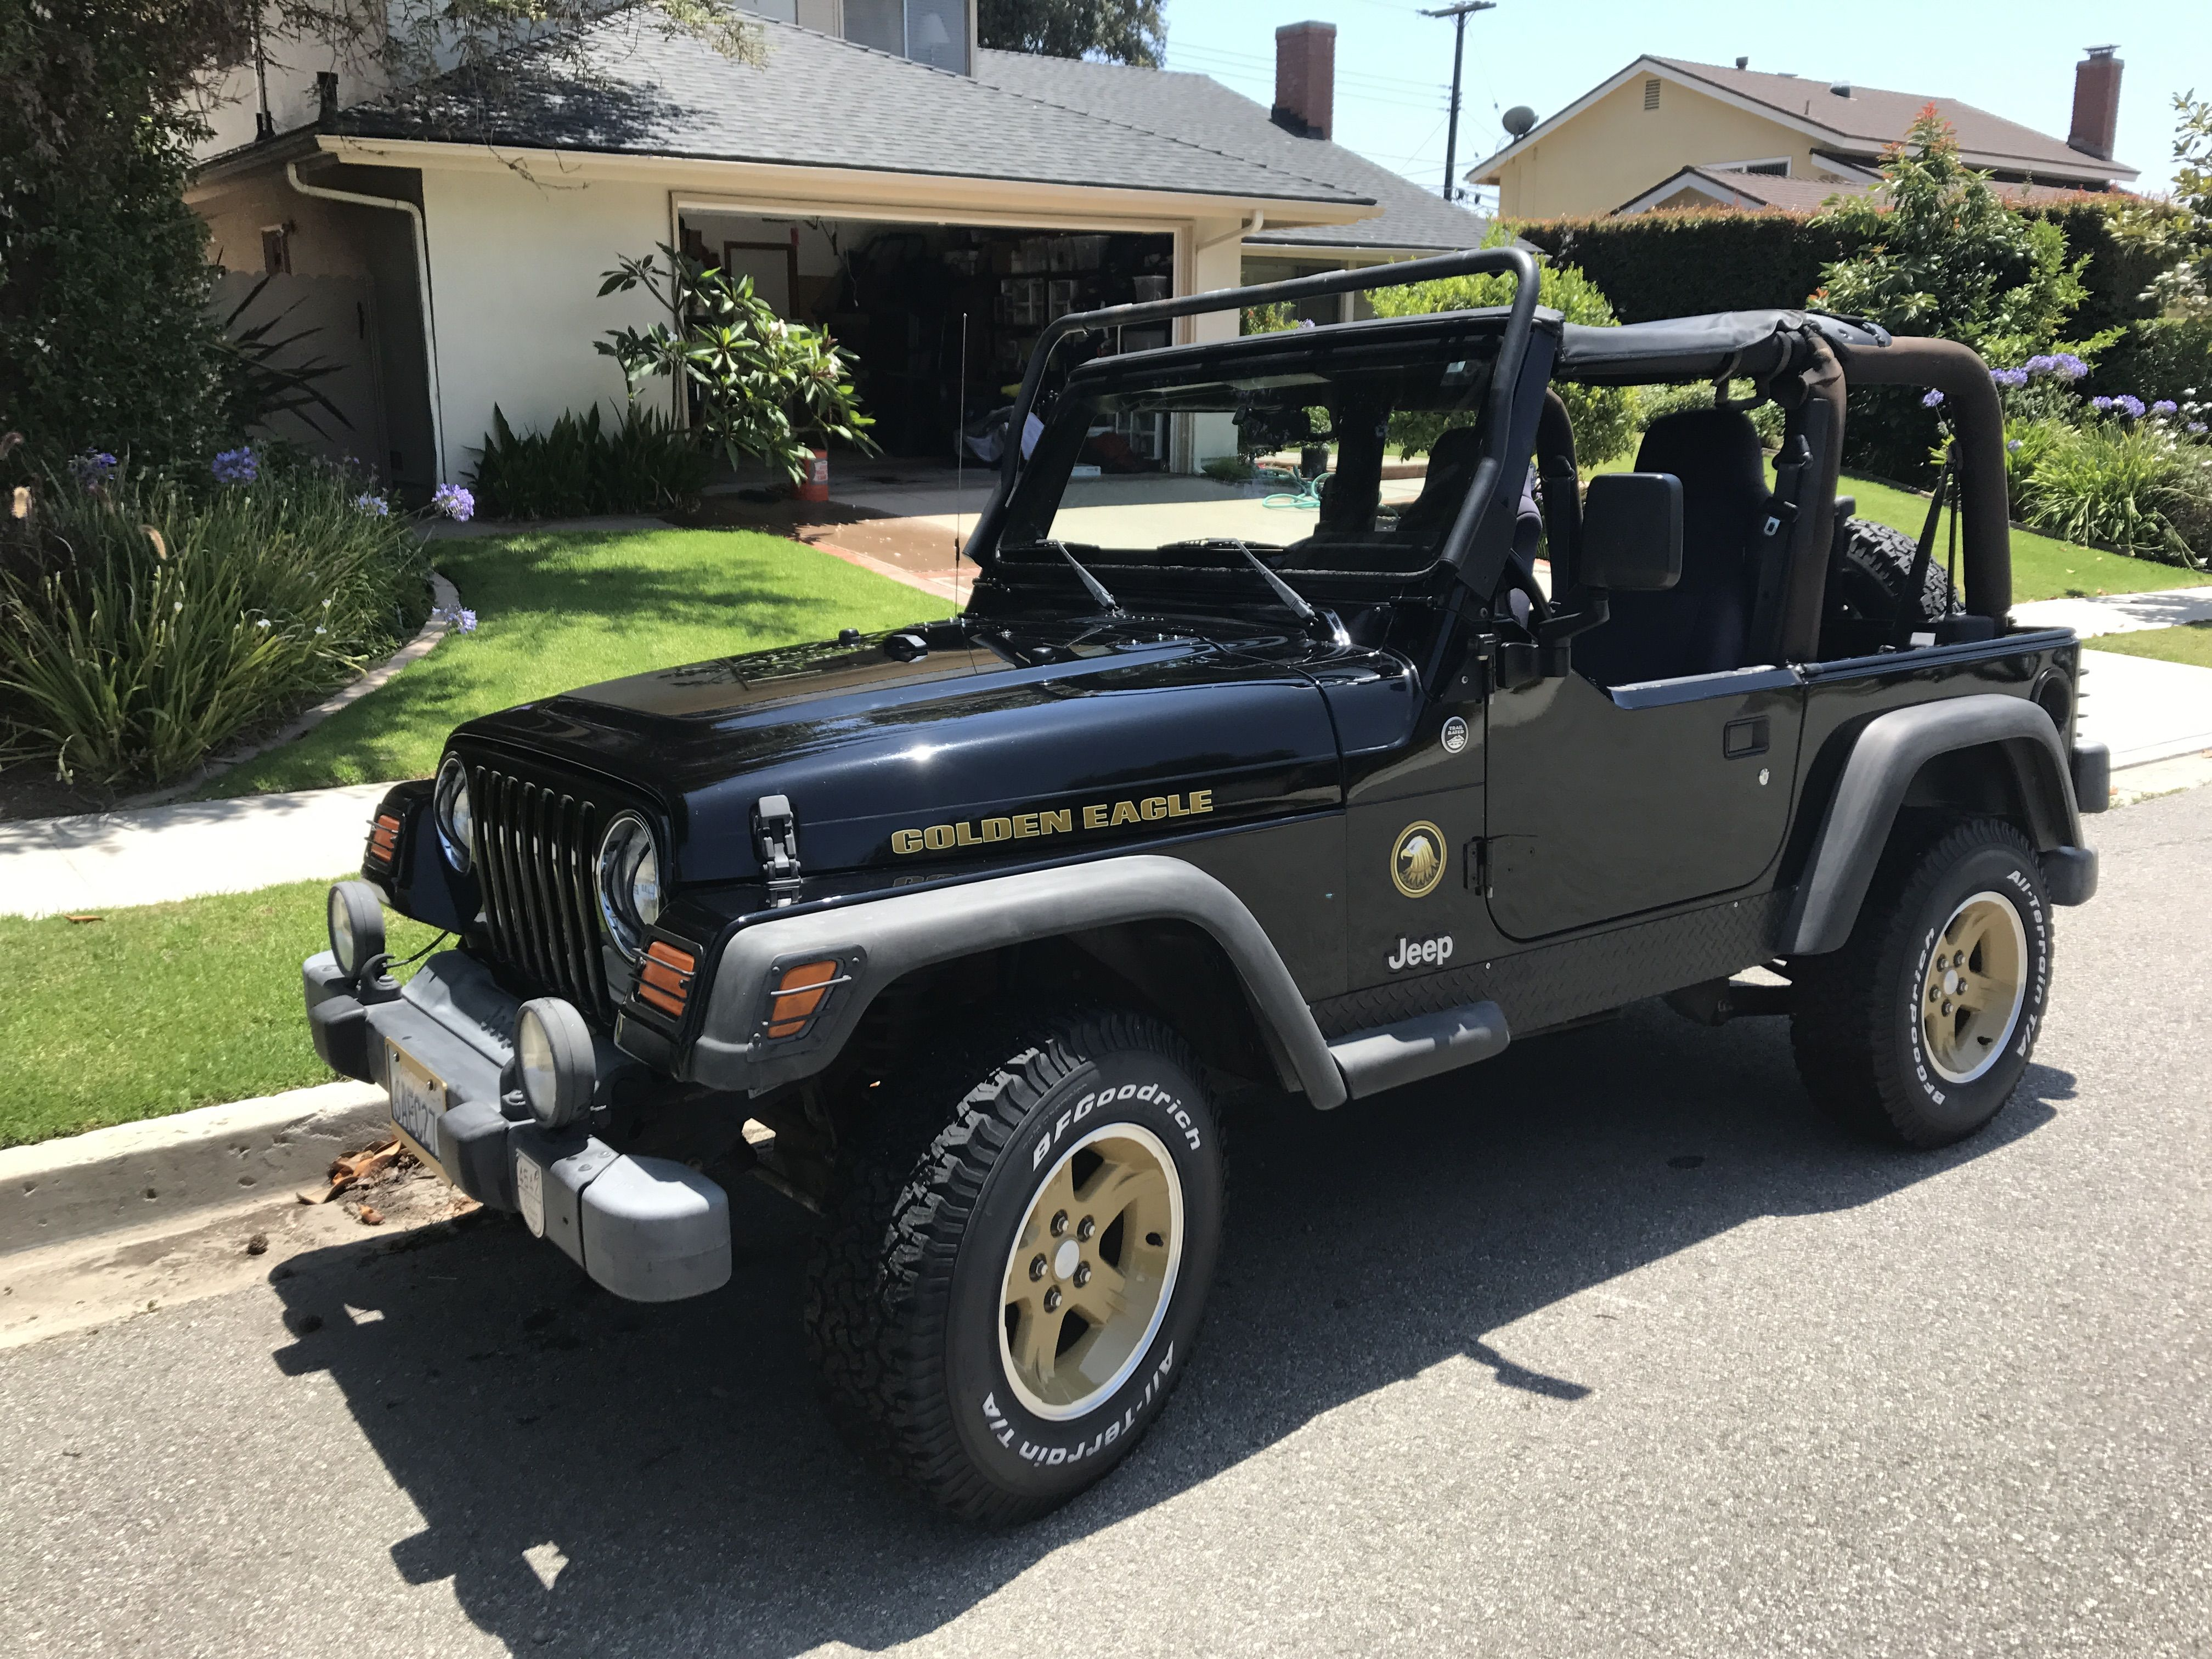 2006 Jeep Golden Eagle 65th Anniversary Edition Jeep Golden